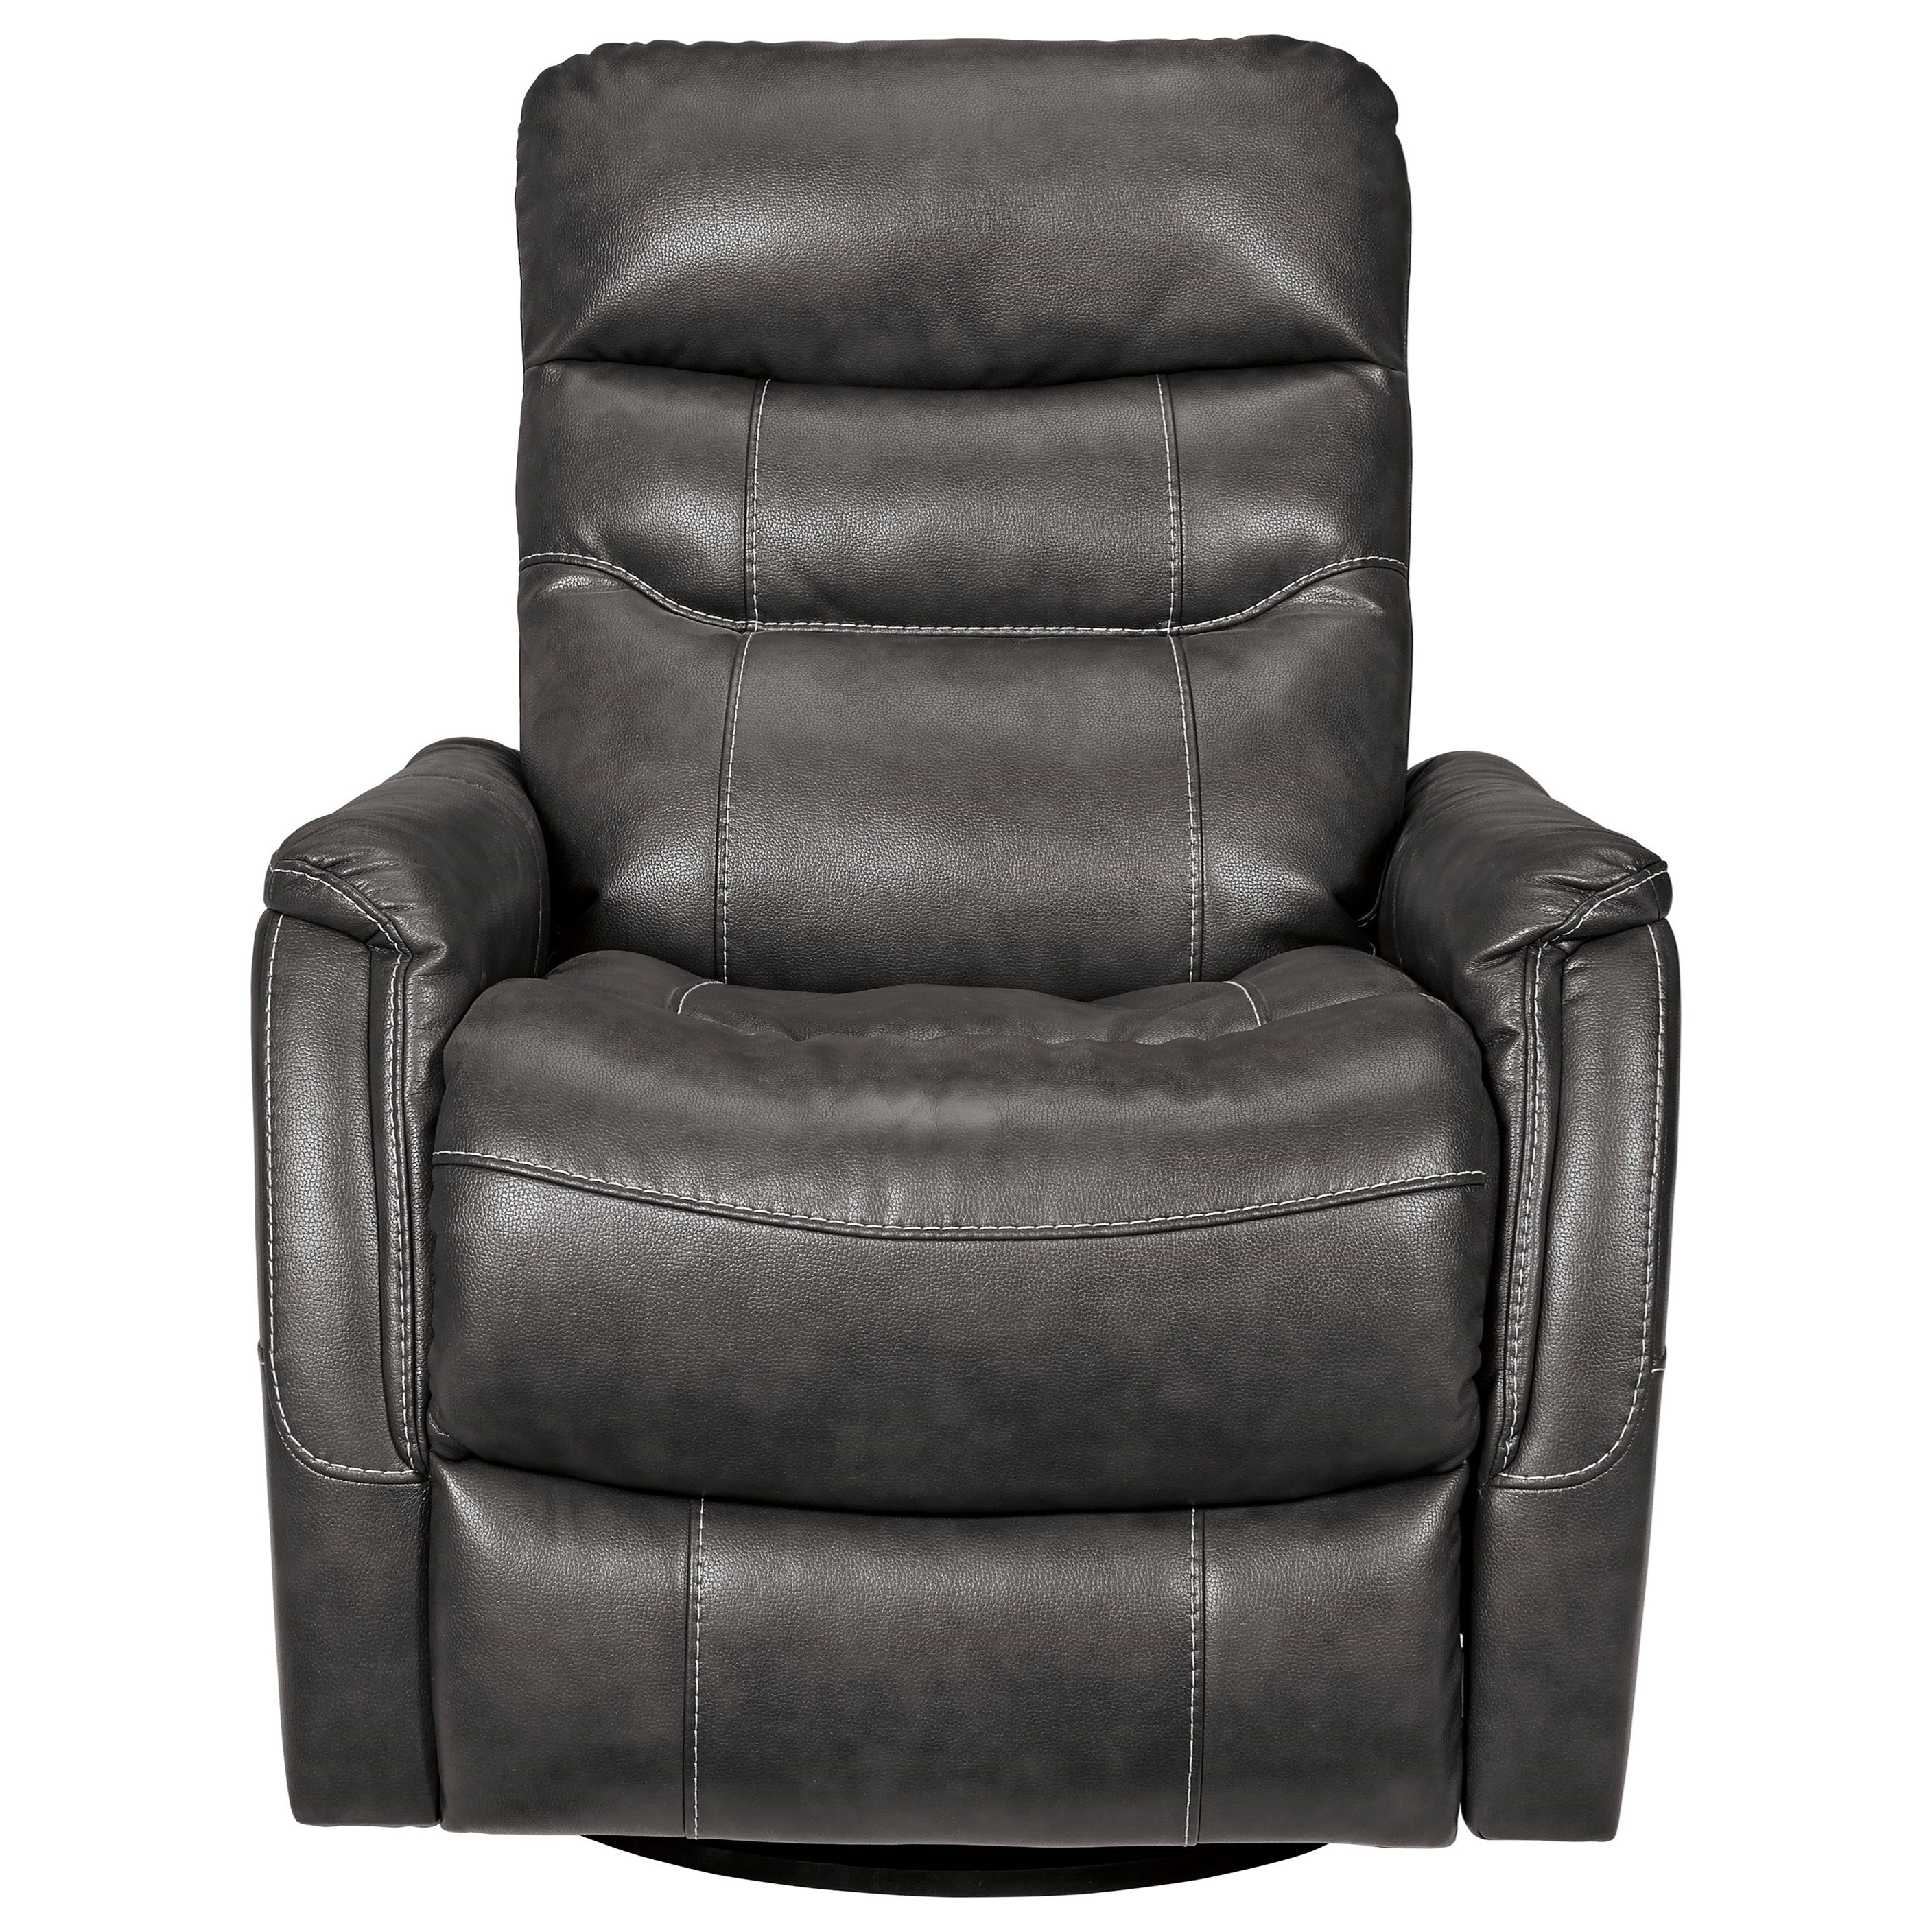 Riptyme Recliner by Signature Design by Ashley at Red Knot